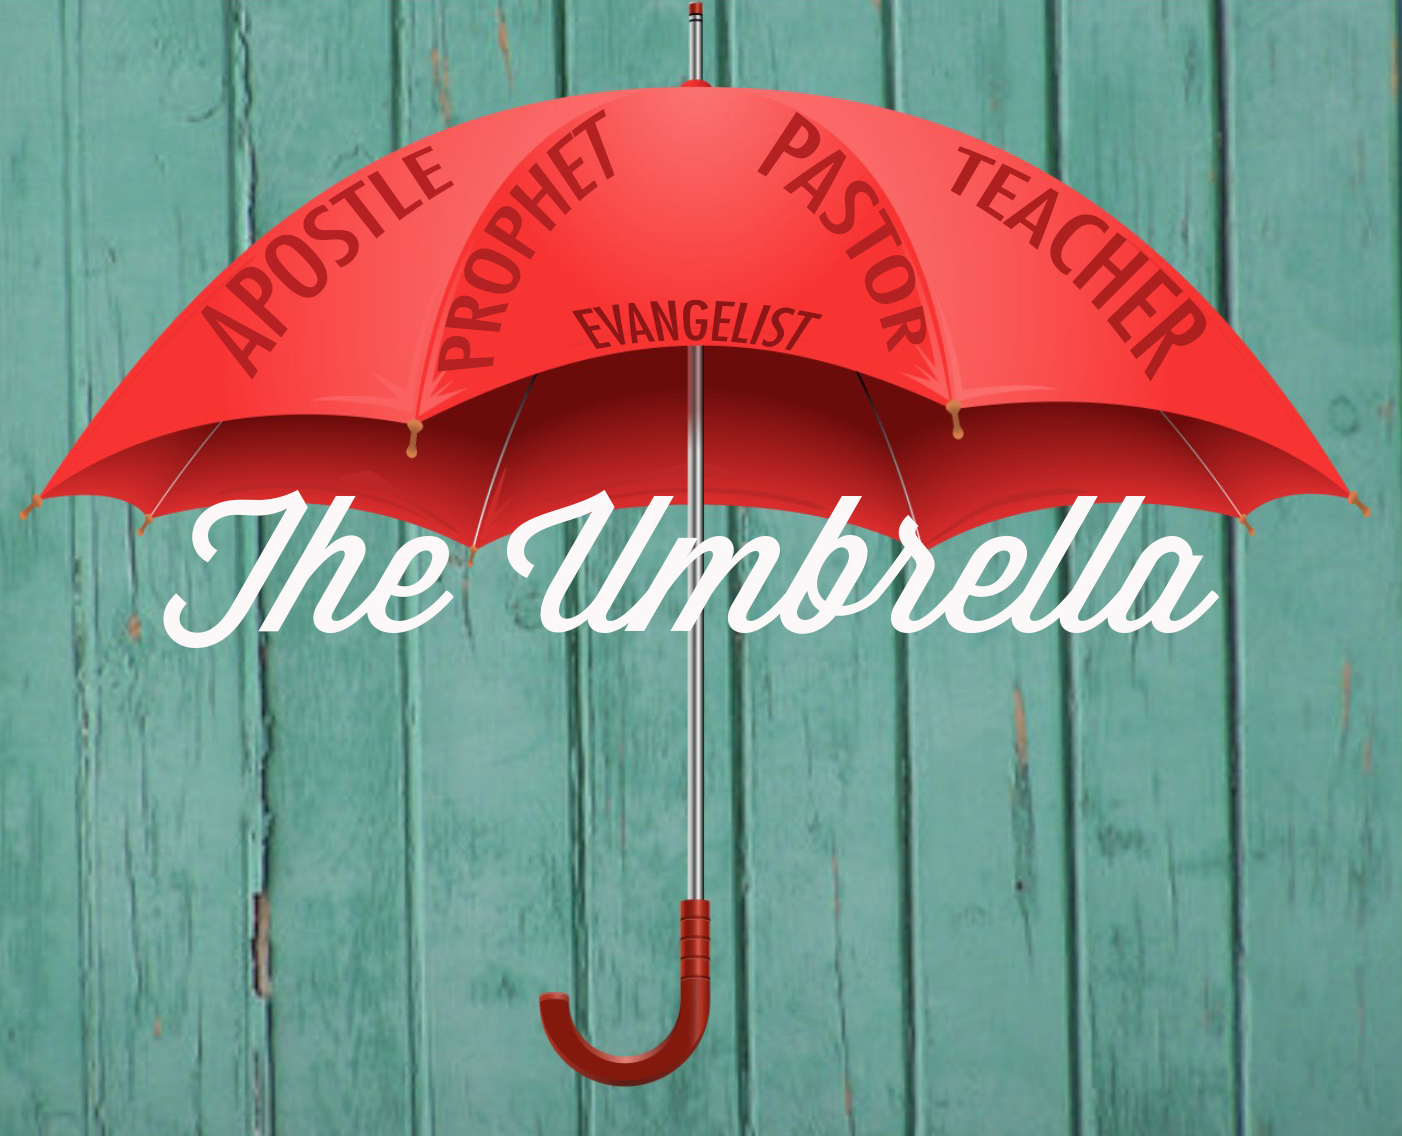 The Umbrella: A Force to be Dealt With by Glenn Middleton